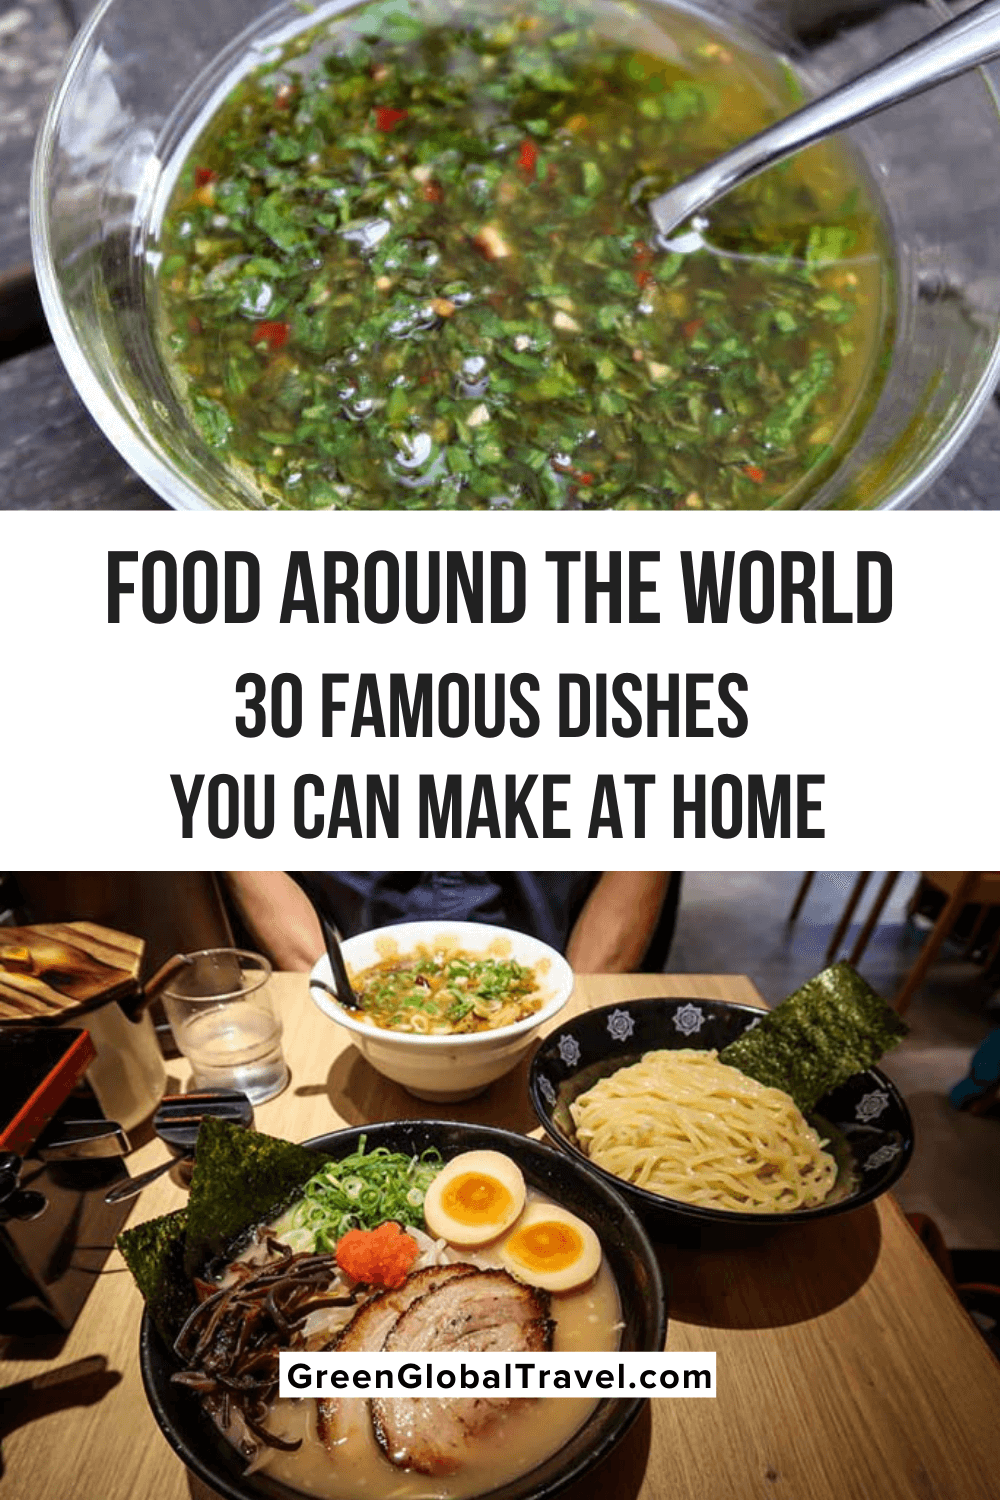 Traditional Food Around the World: 30 Famous Dishes You Can Make at Home | foods from different countries | famous foods from different countries | traditional food around the world | famous dishes around the world | famous food around the world | traditional dishes from around the world | different foods around the world | cultural foods around the world | unique foods around the world | best food around the world | traditional dishes from around the world